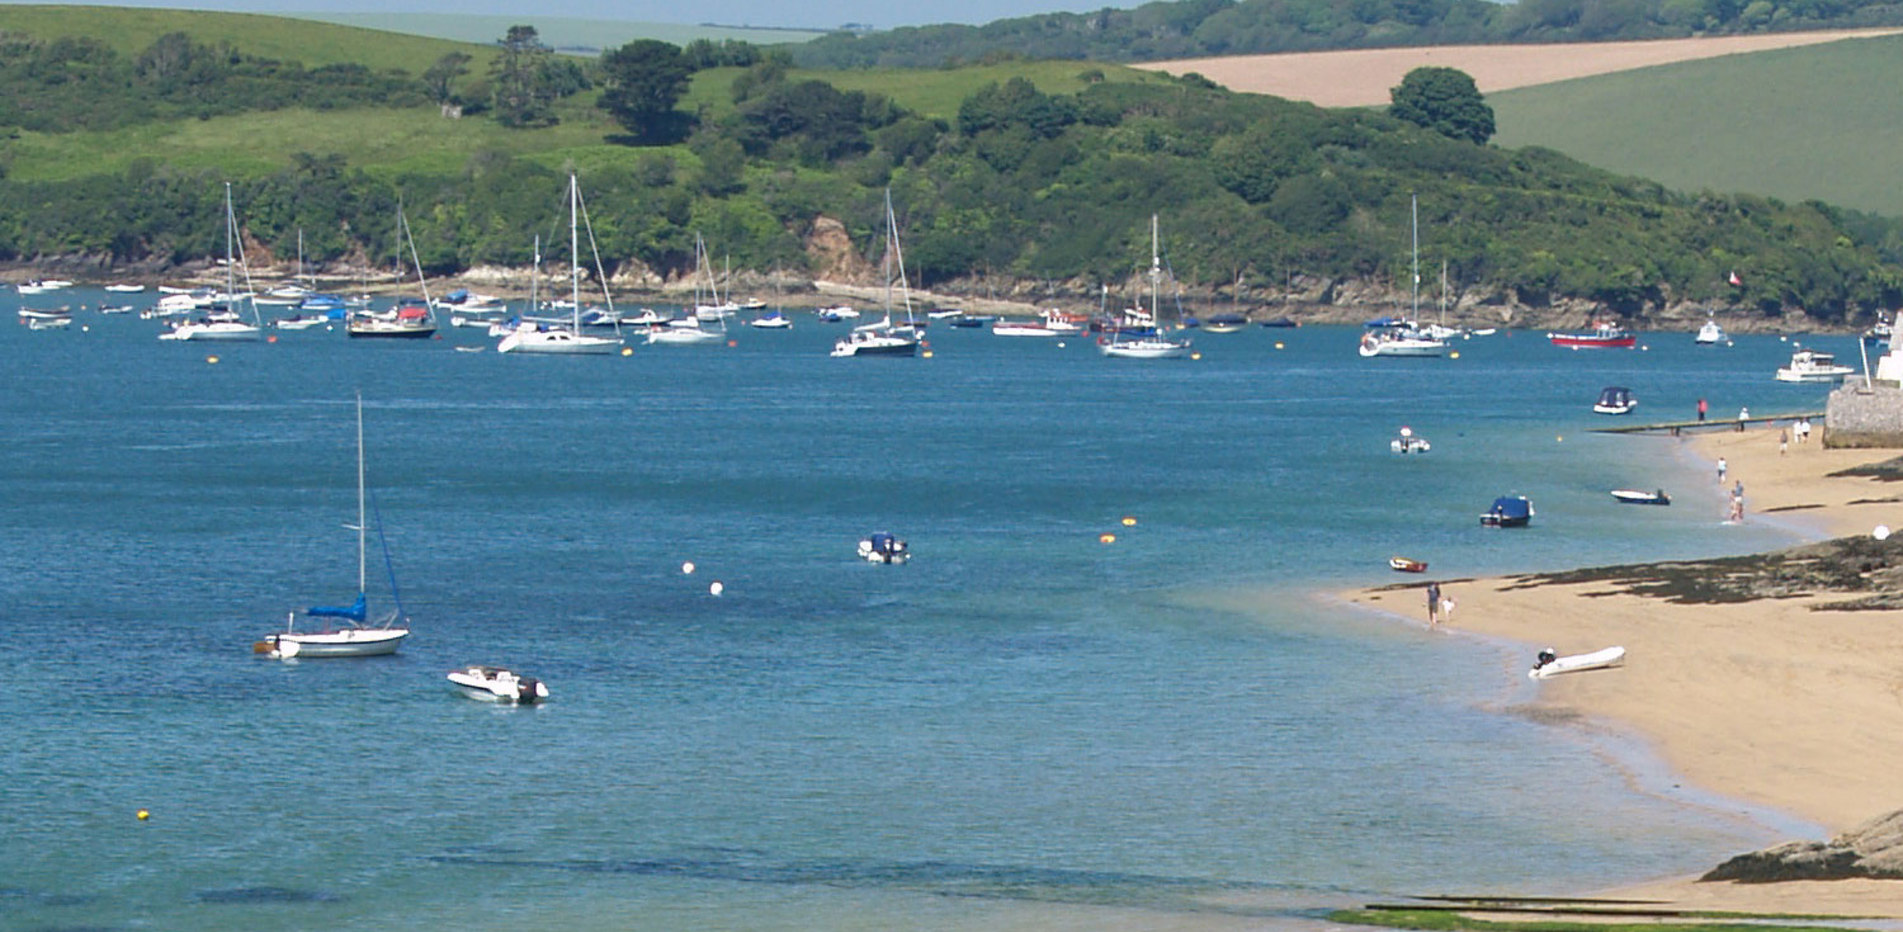 From Small's Beach, Salcombe